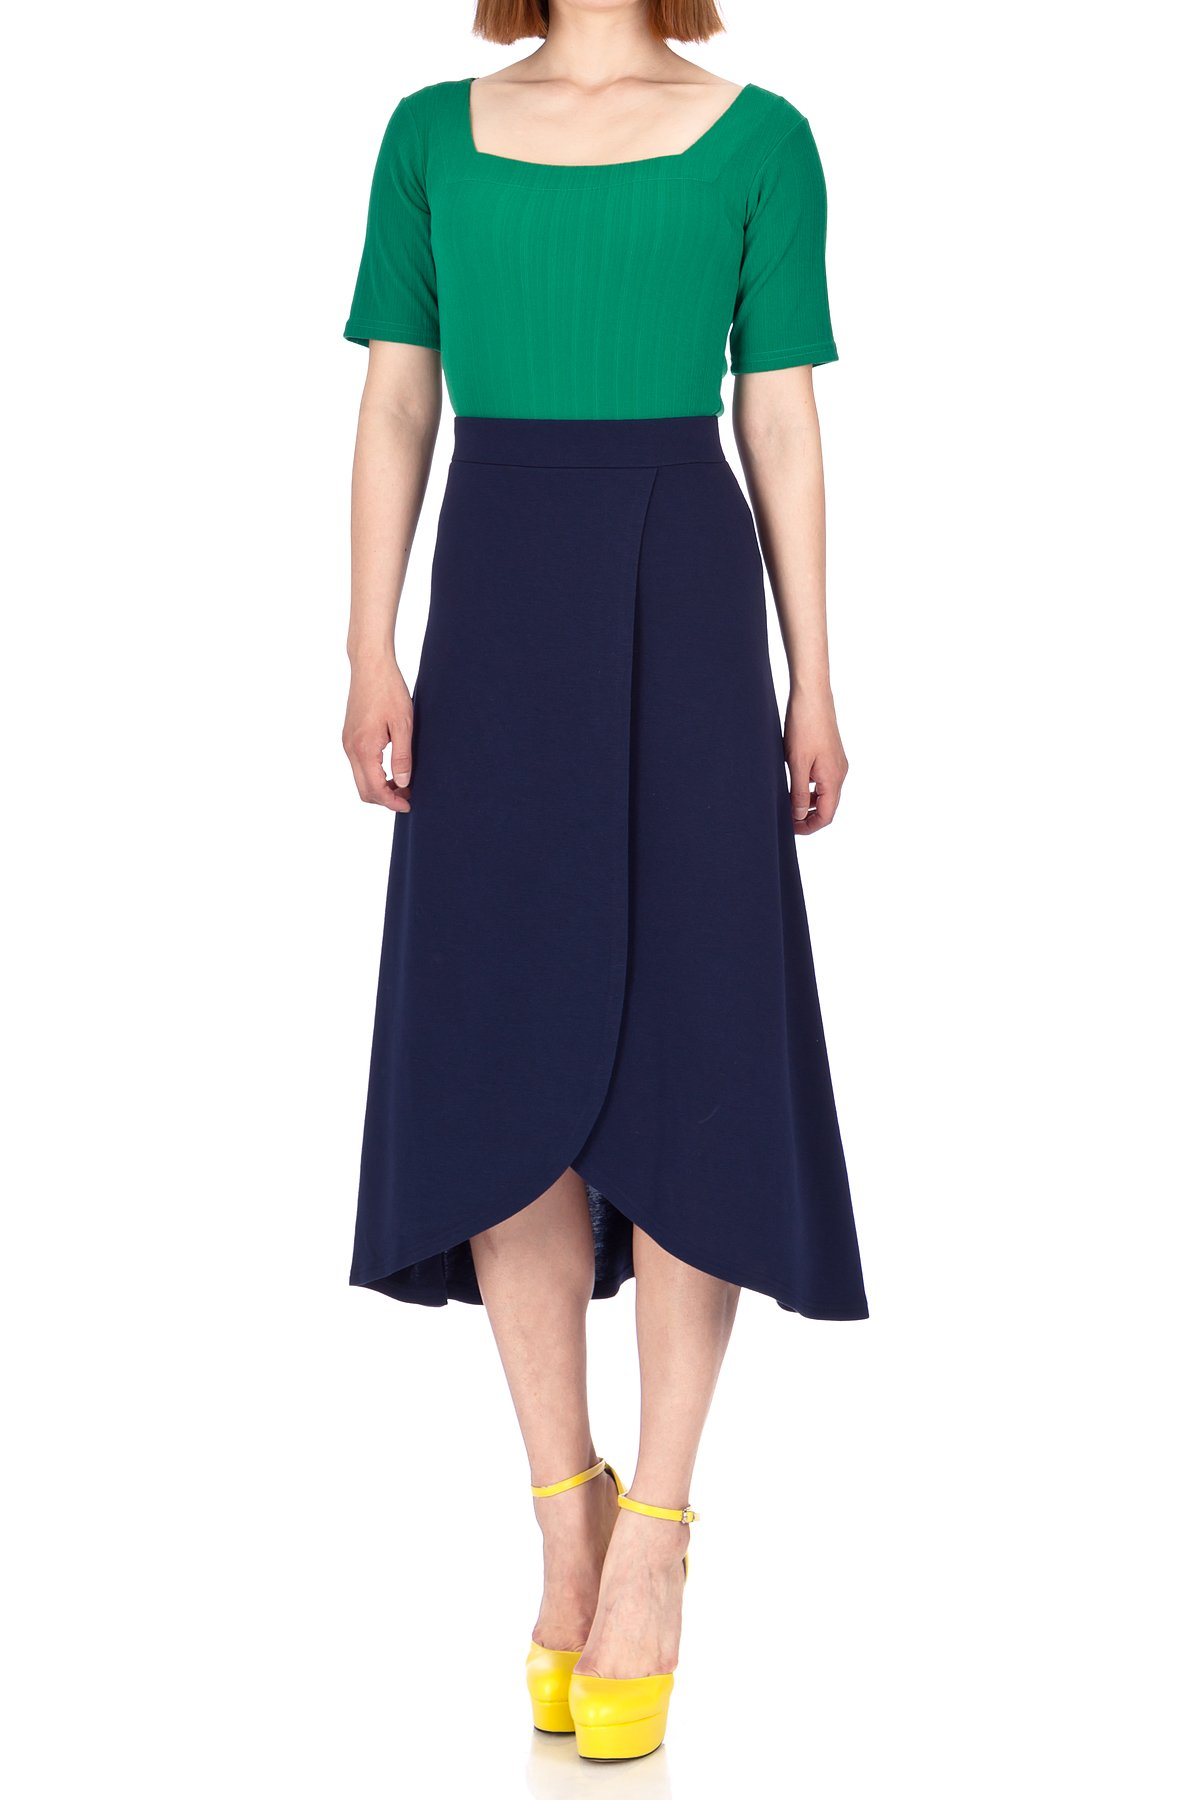 Easy Chic Wrap Style Full Flared Skater Swing Midi Long Maxi Skirt Navy 01